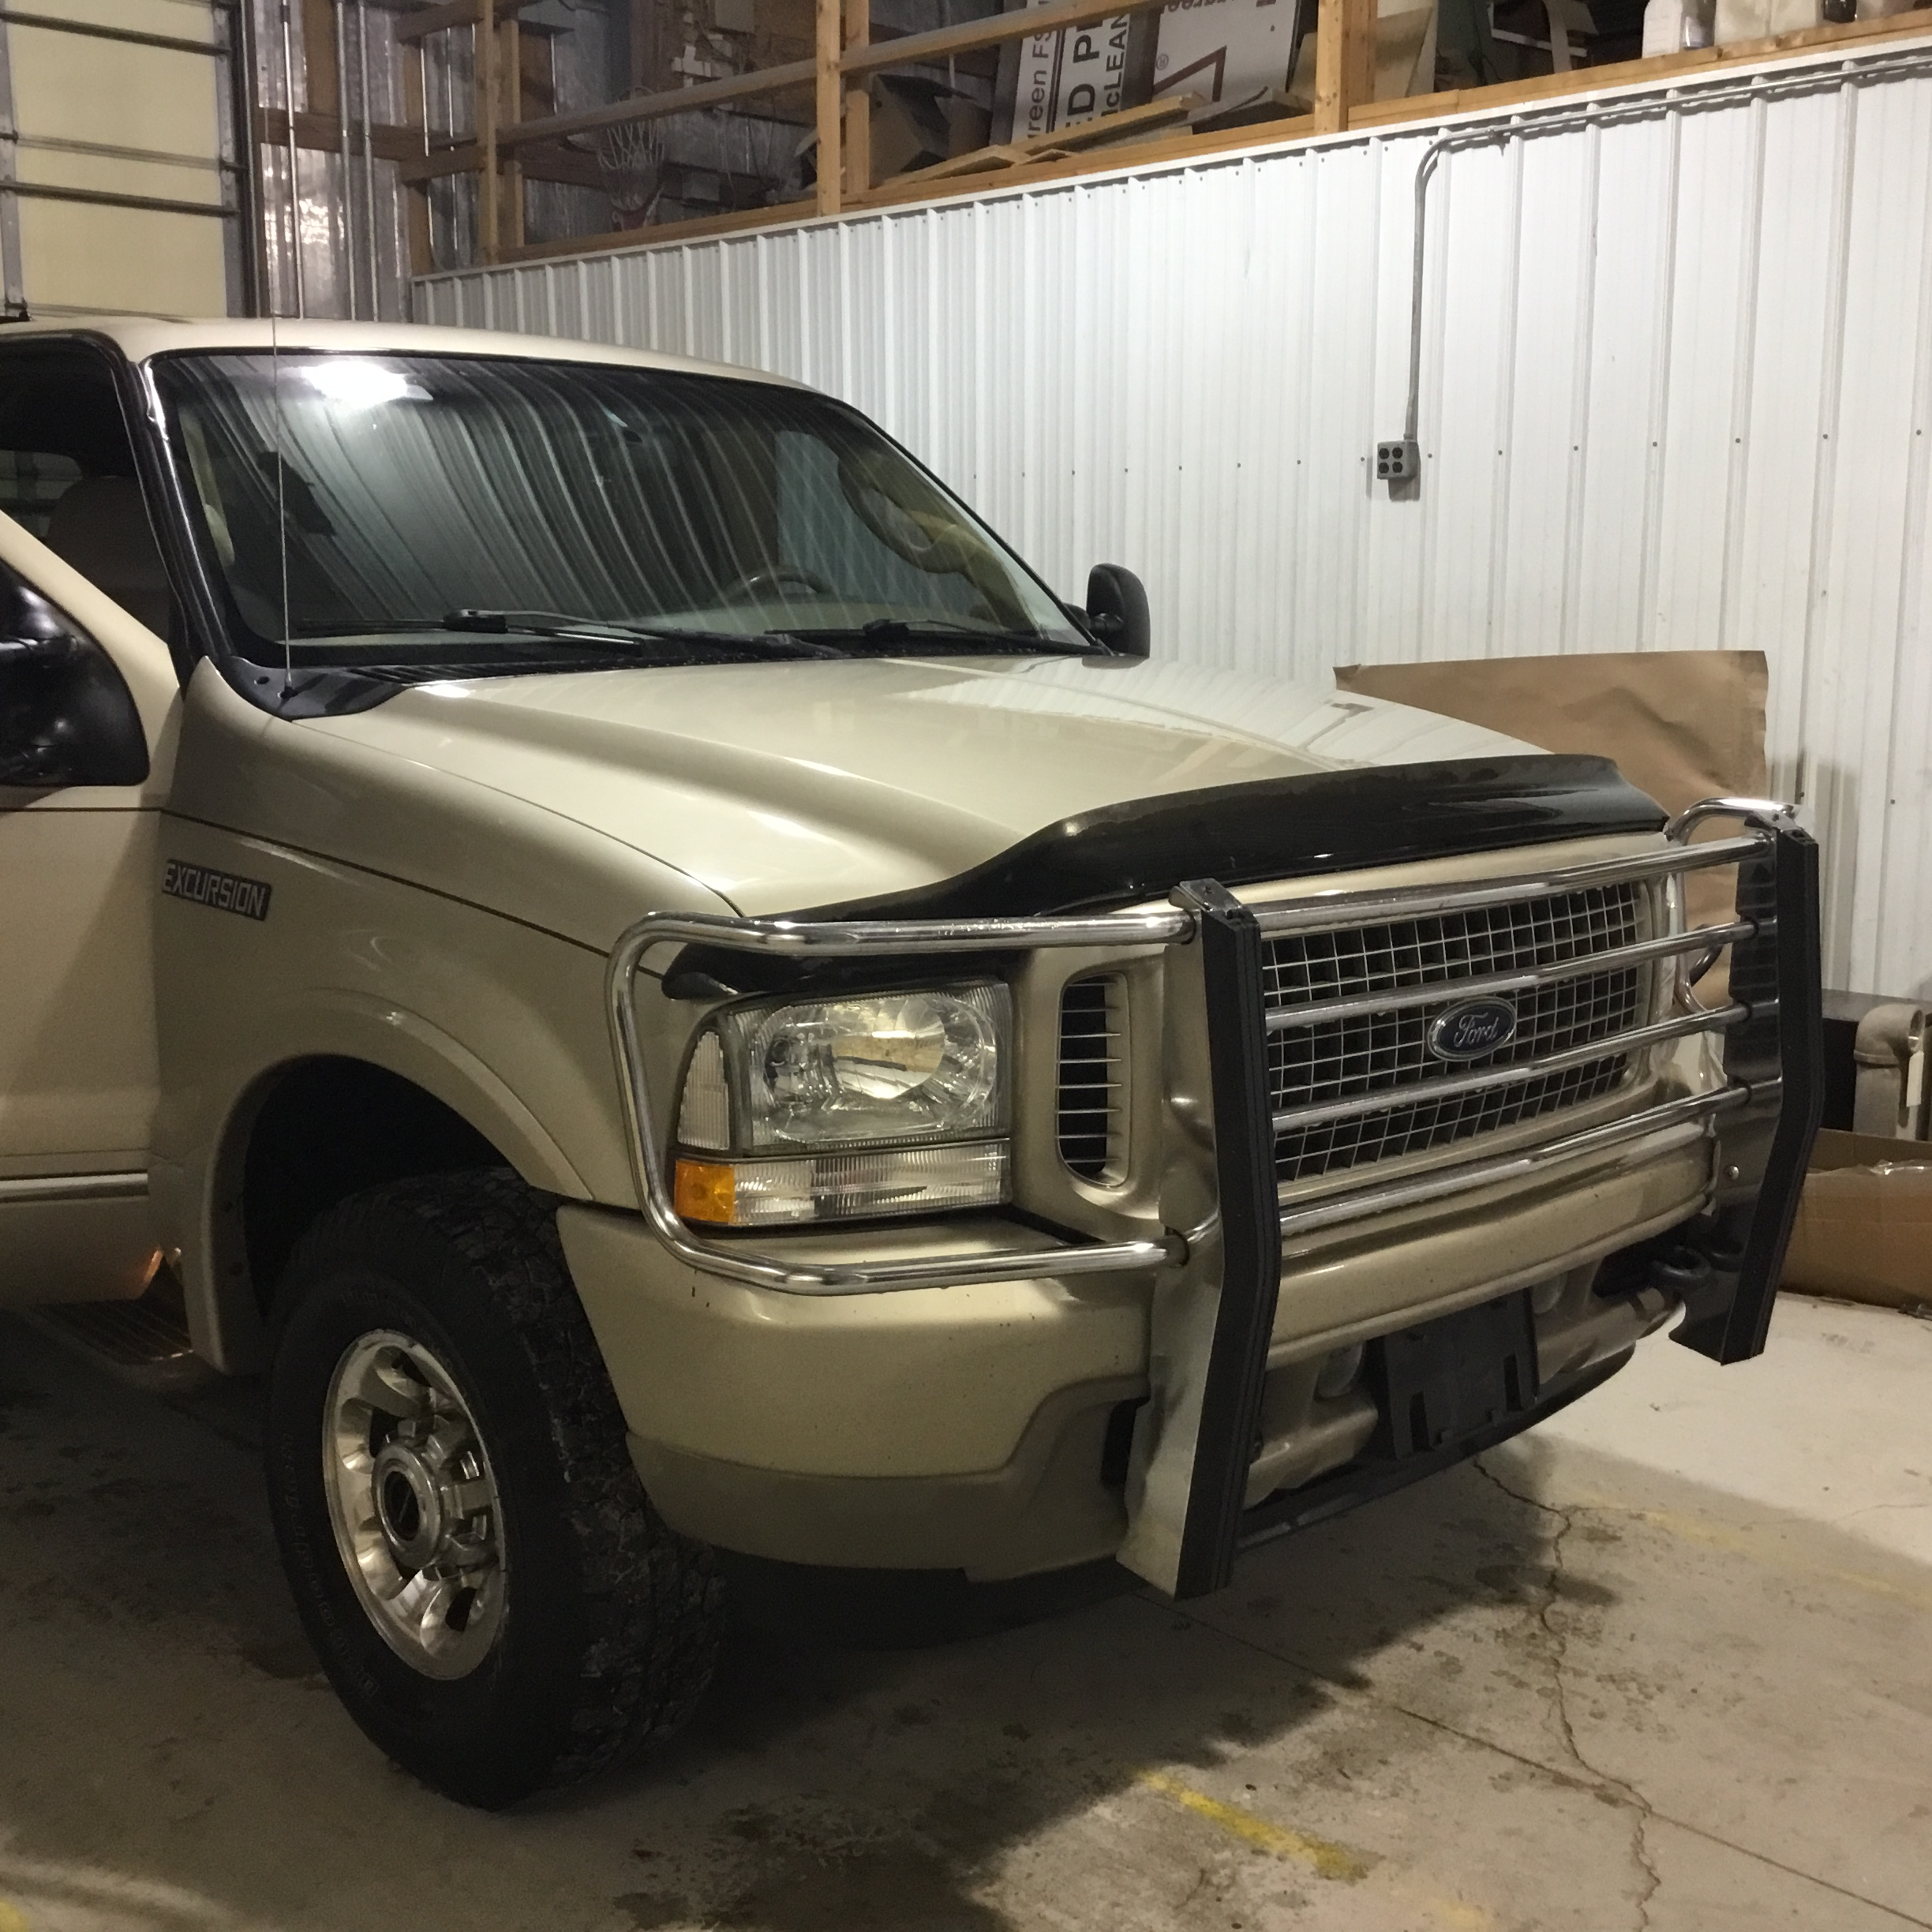 2004 Ford Excursion Limited, 6.0 Diesel, 4x4, 205,000 Miles, Vin 1C4NJPBB2HD103824, Tan, Good - Image 12 of 12